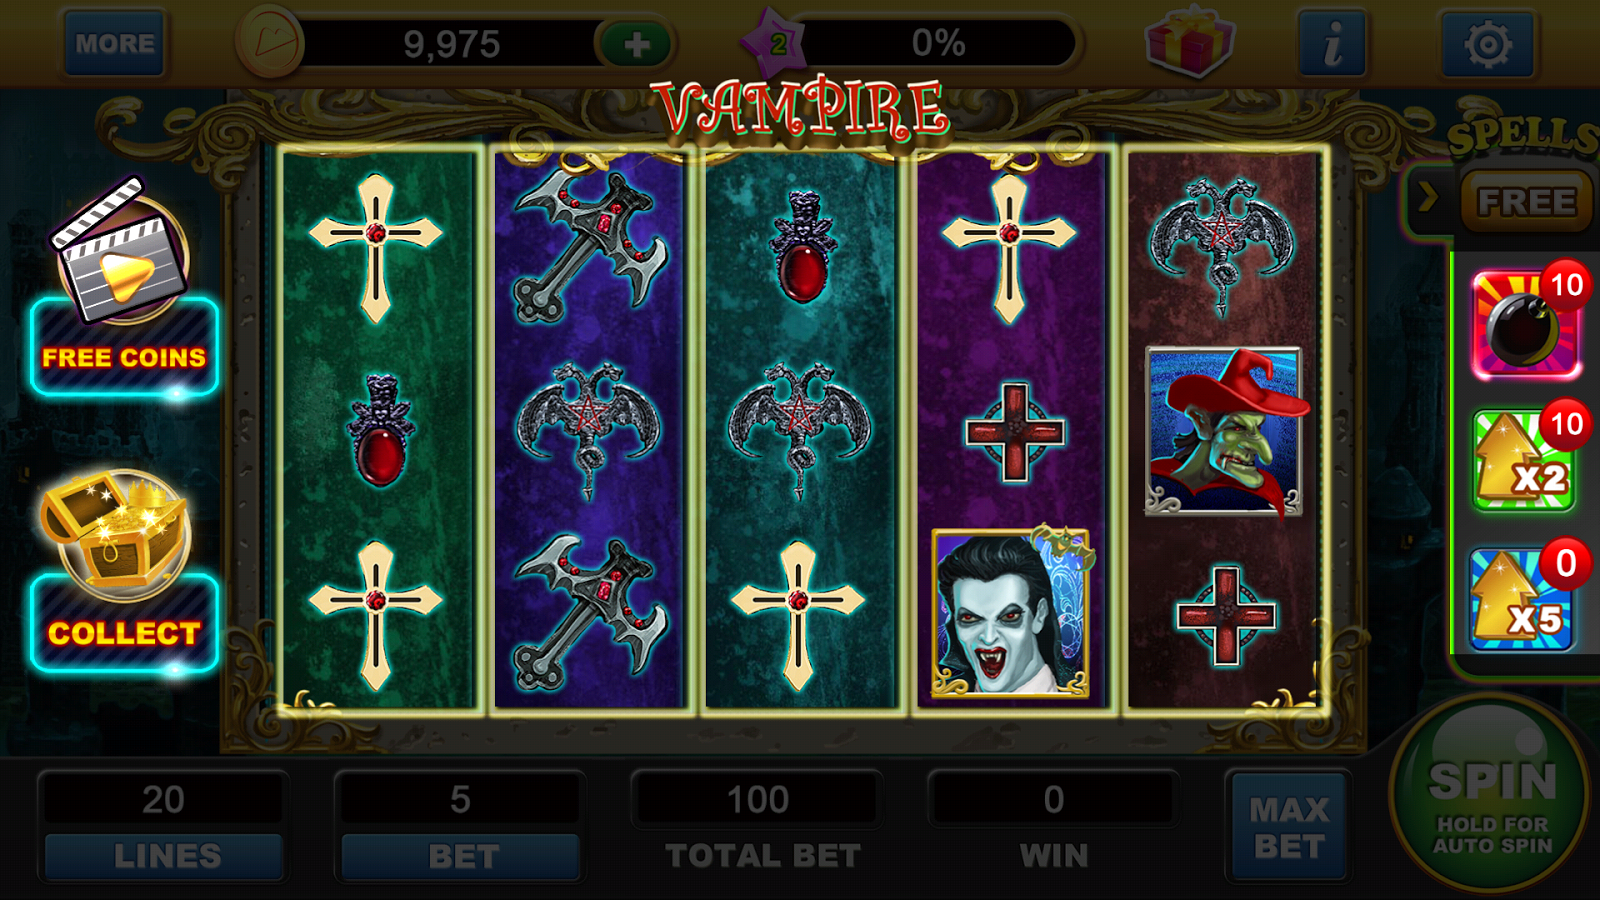 Vampire Castle Slot - Play Online for Free Instantly